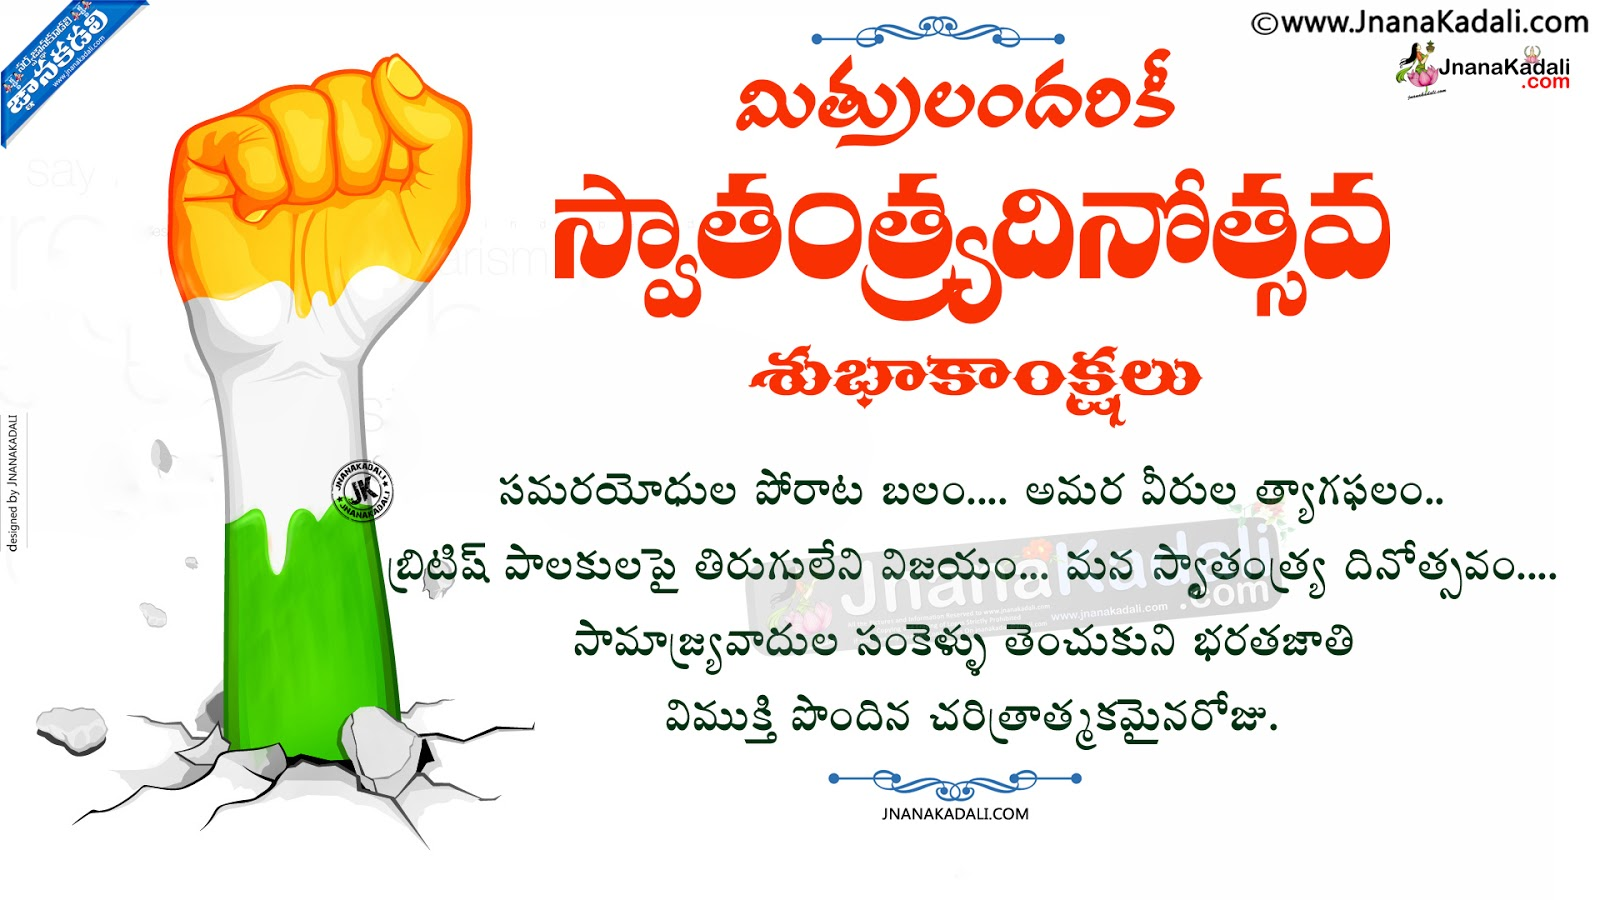 happy independence day quotes in telugu 70th independence day essay speech quotes wishes